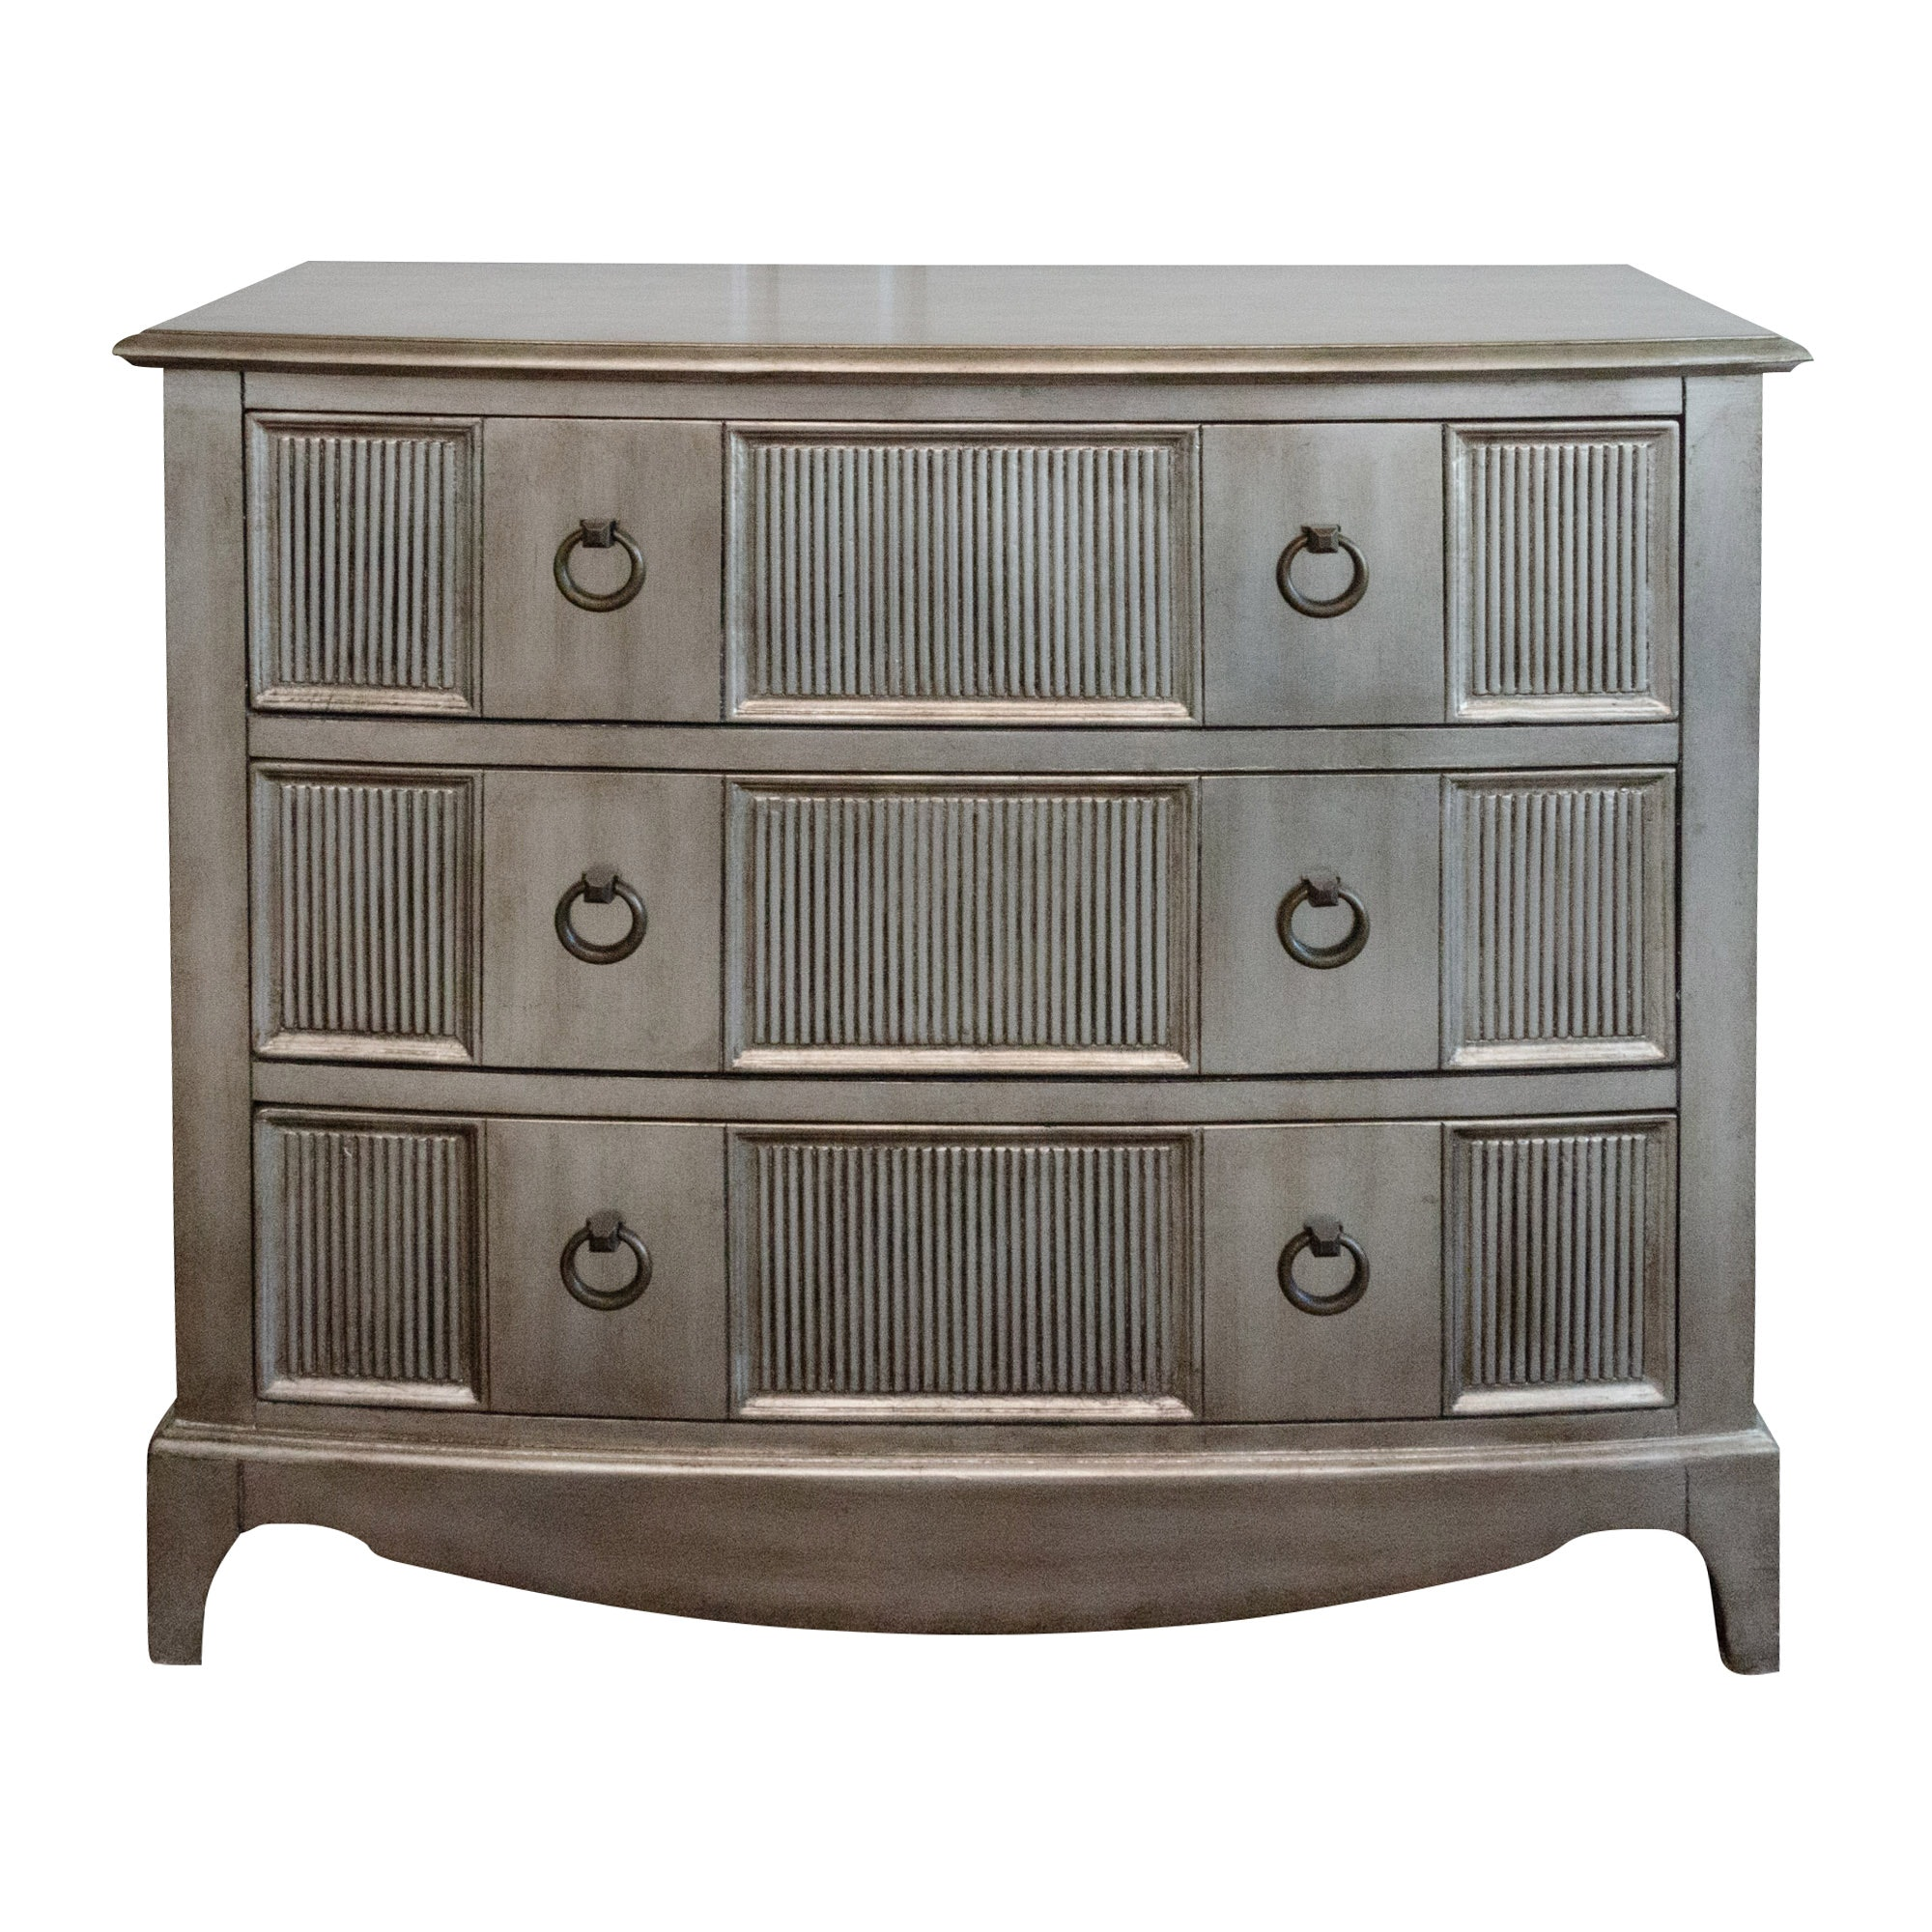 Contemporary Silvered Finish Wooden Chest of Drawers